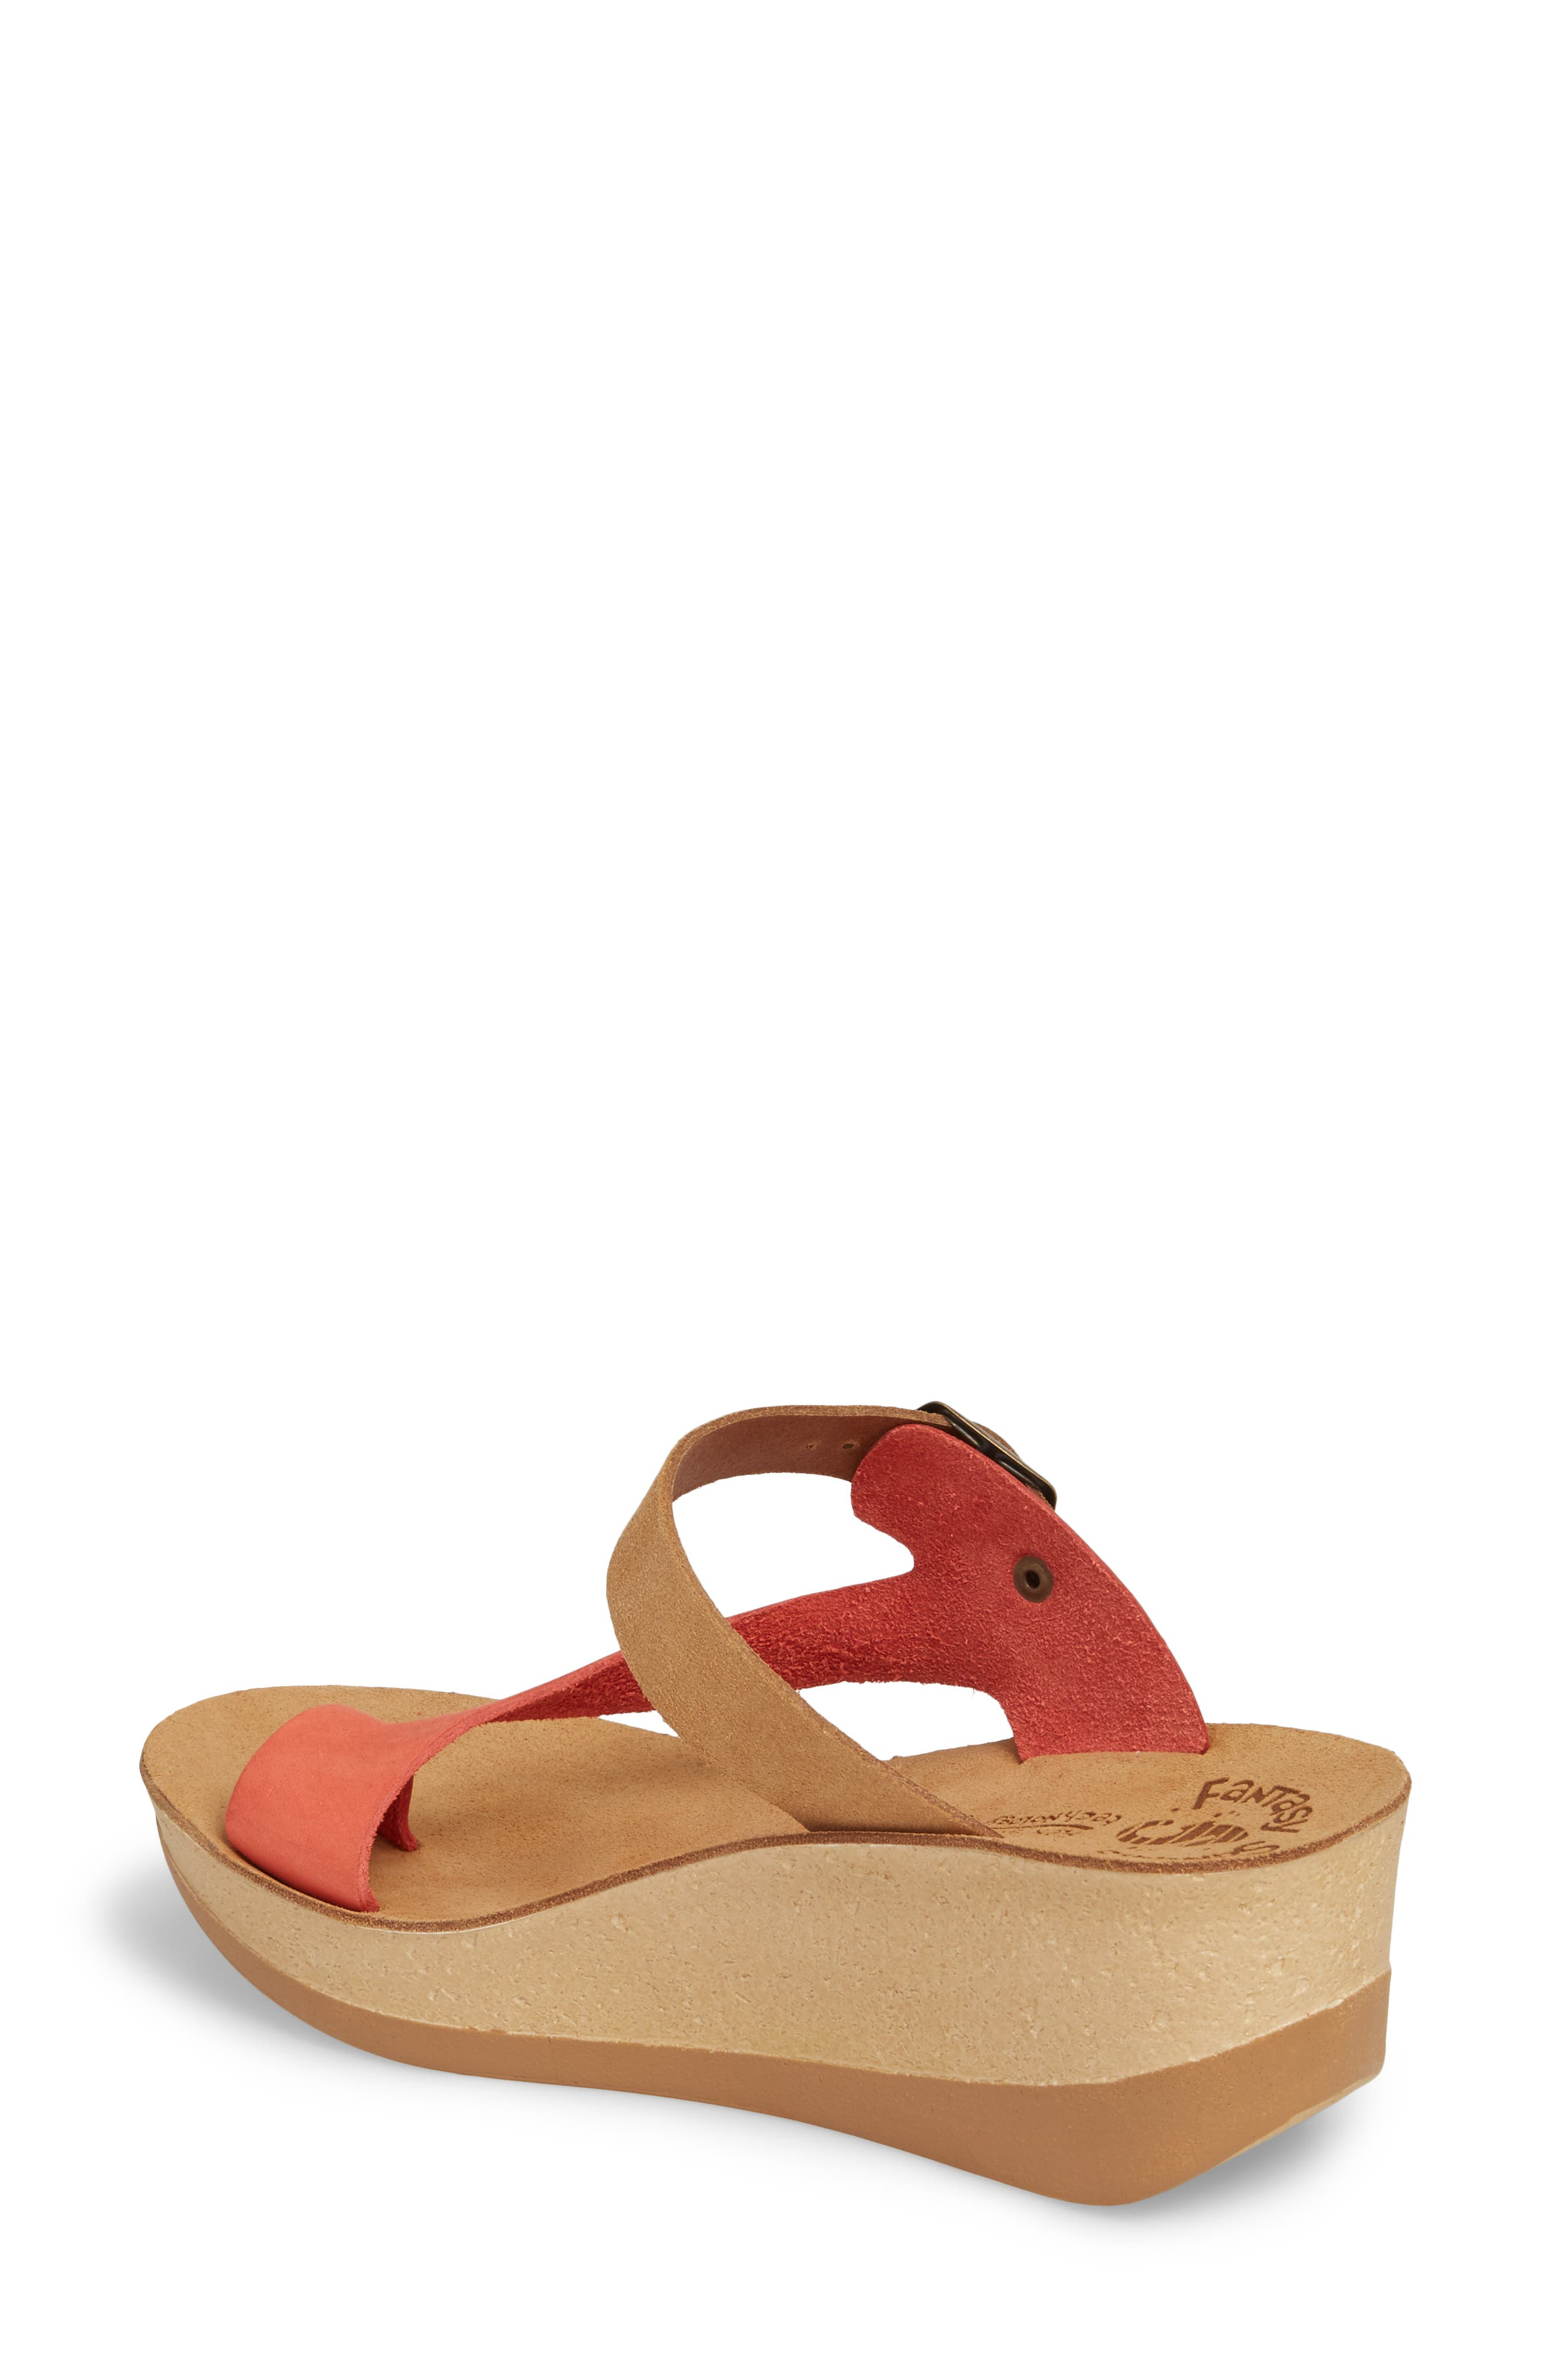 Felisa Wedge Sandal,                             Alternate thumbnail 2, color,                             Cuoio Red Leather